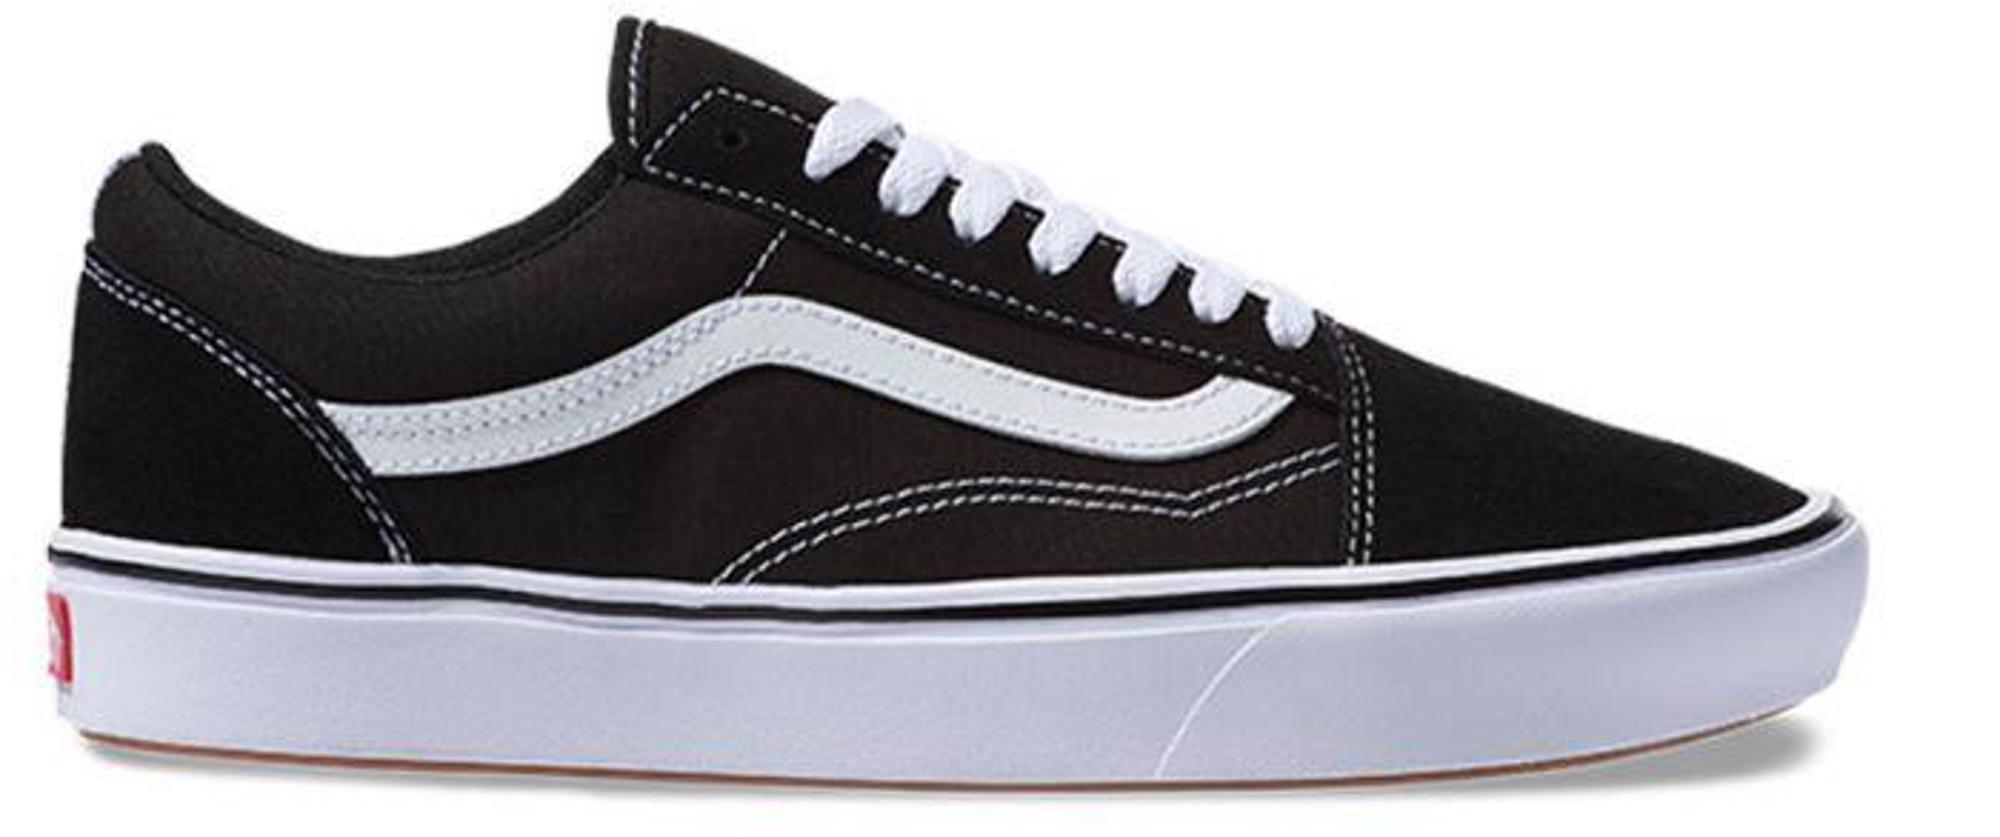 VANS COMFYCUSH OLD SKOOL (CLASSIC) BLACKBLACK